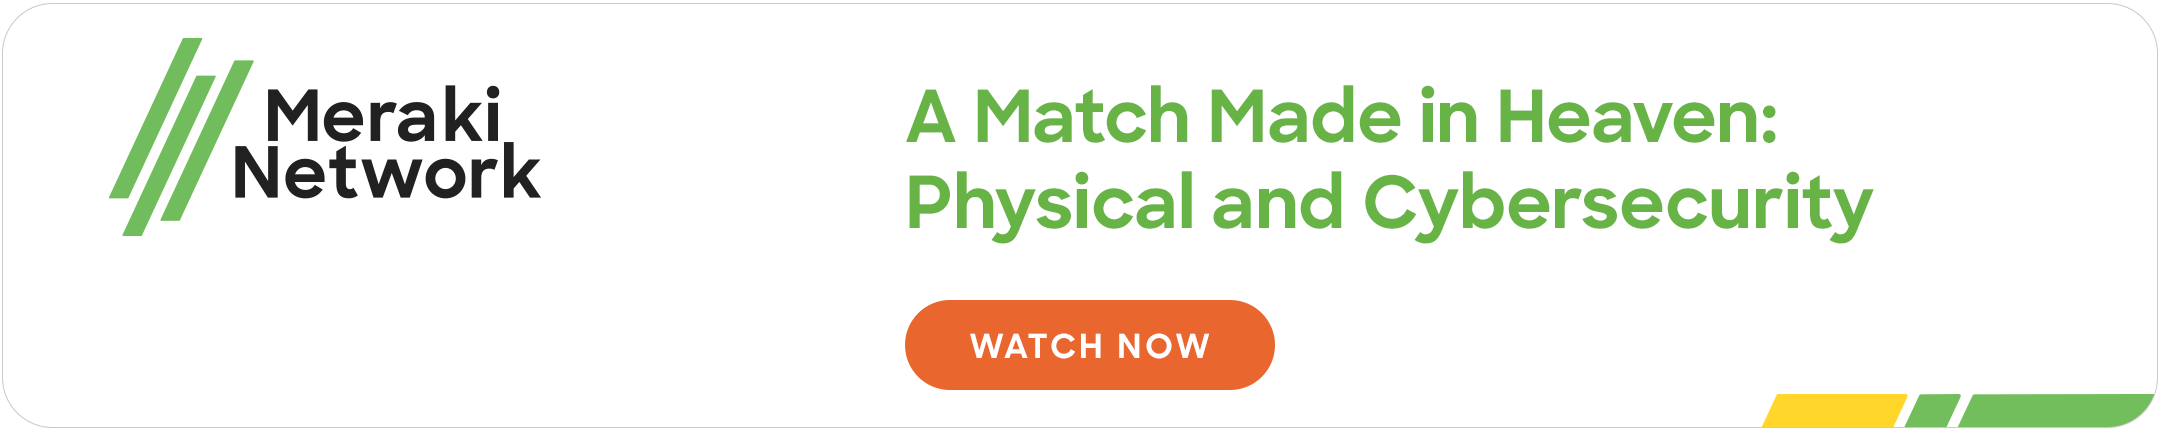 A Match Made in Heaven: Physical and Cybersecurity